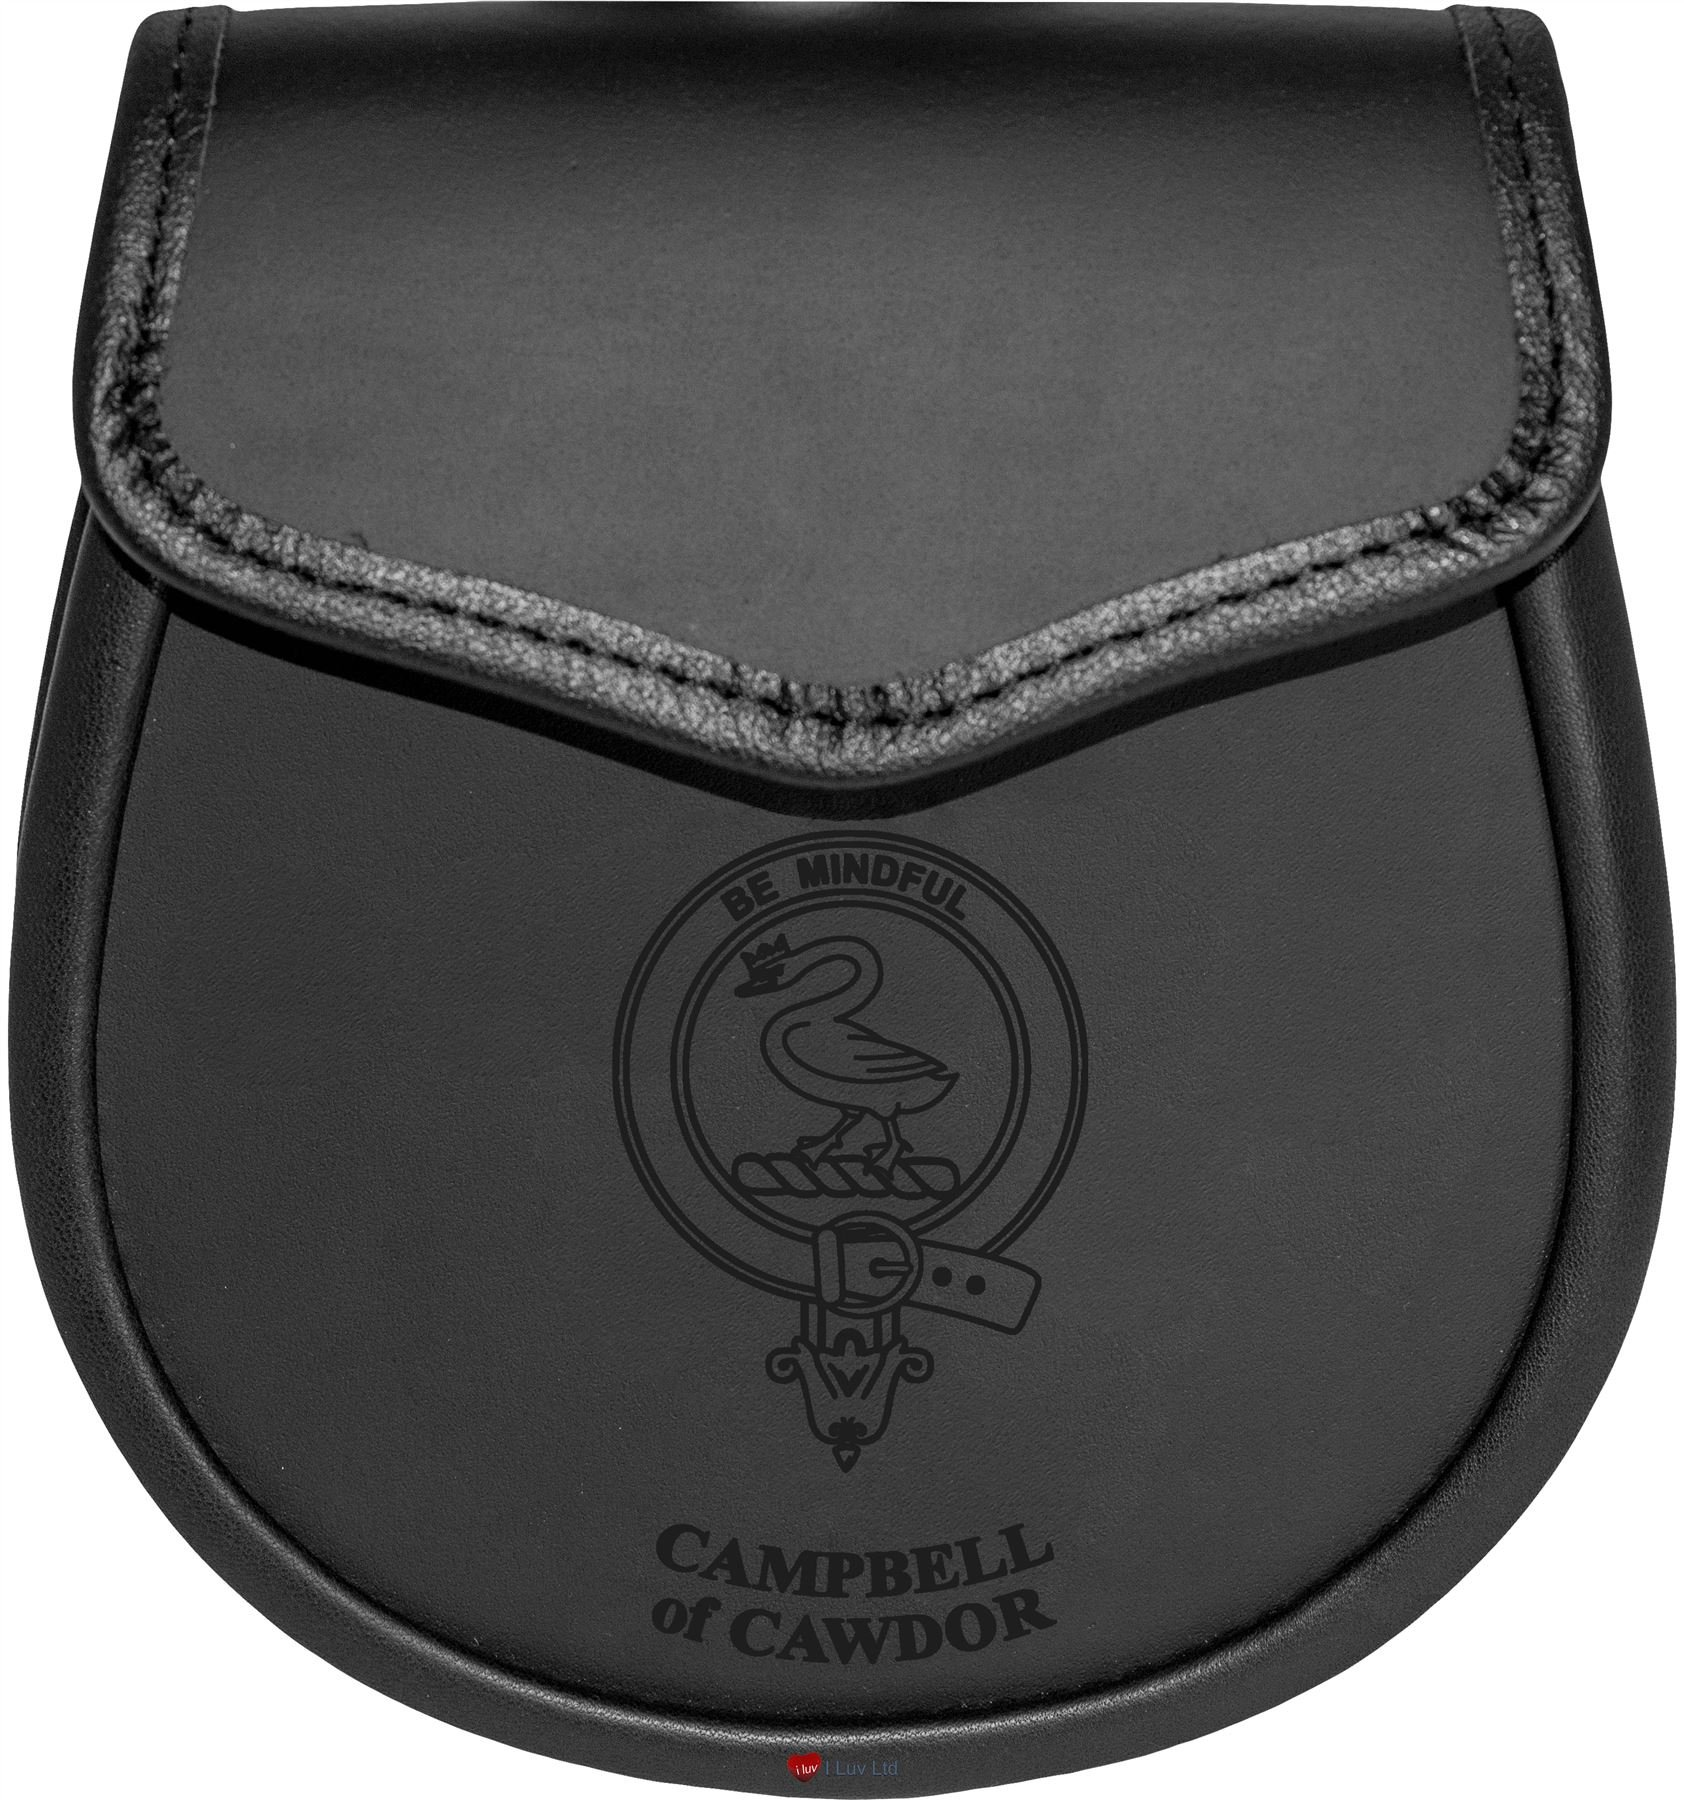 Campbell of Cawdor Leather Day Sporran Scottish Clan Crest by iLuv (Image #1)